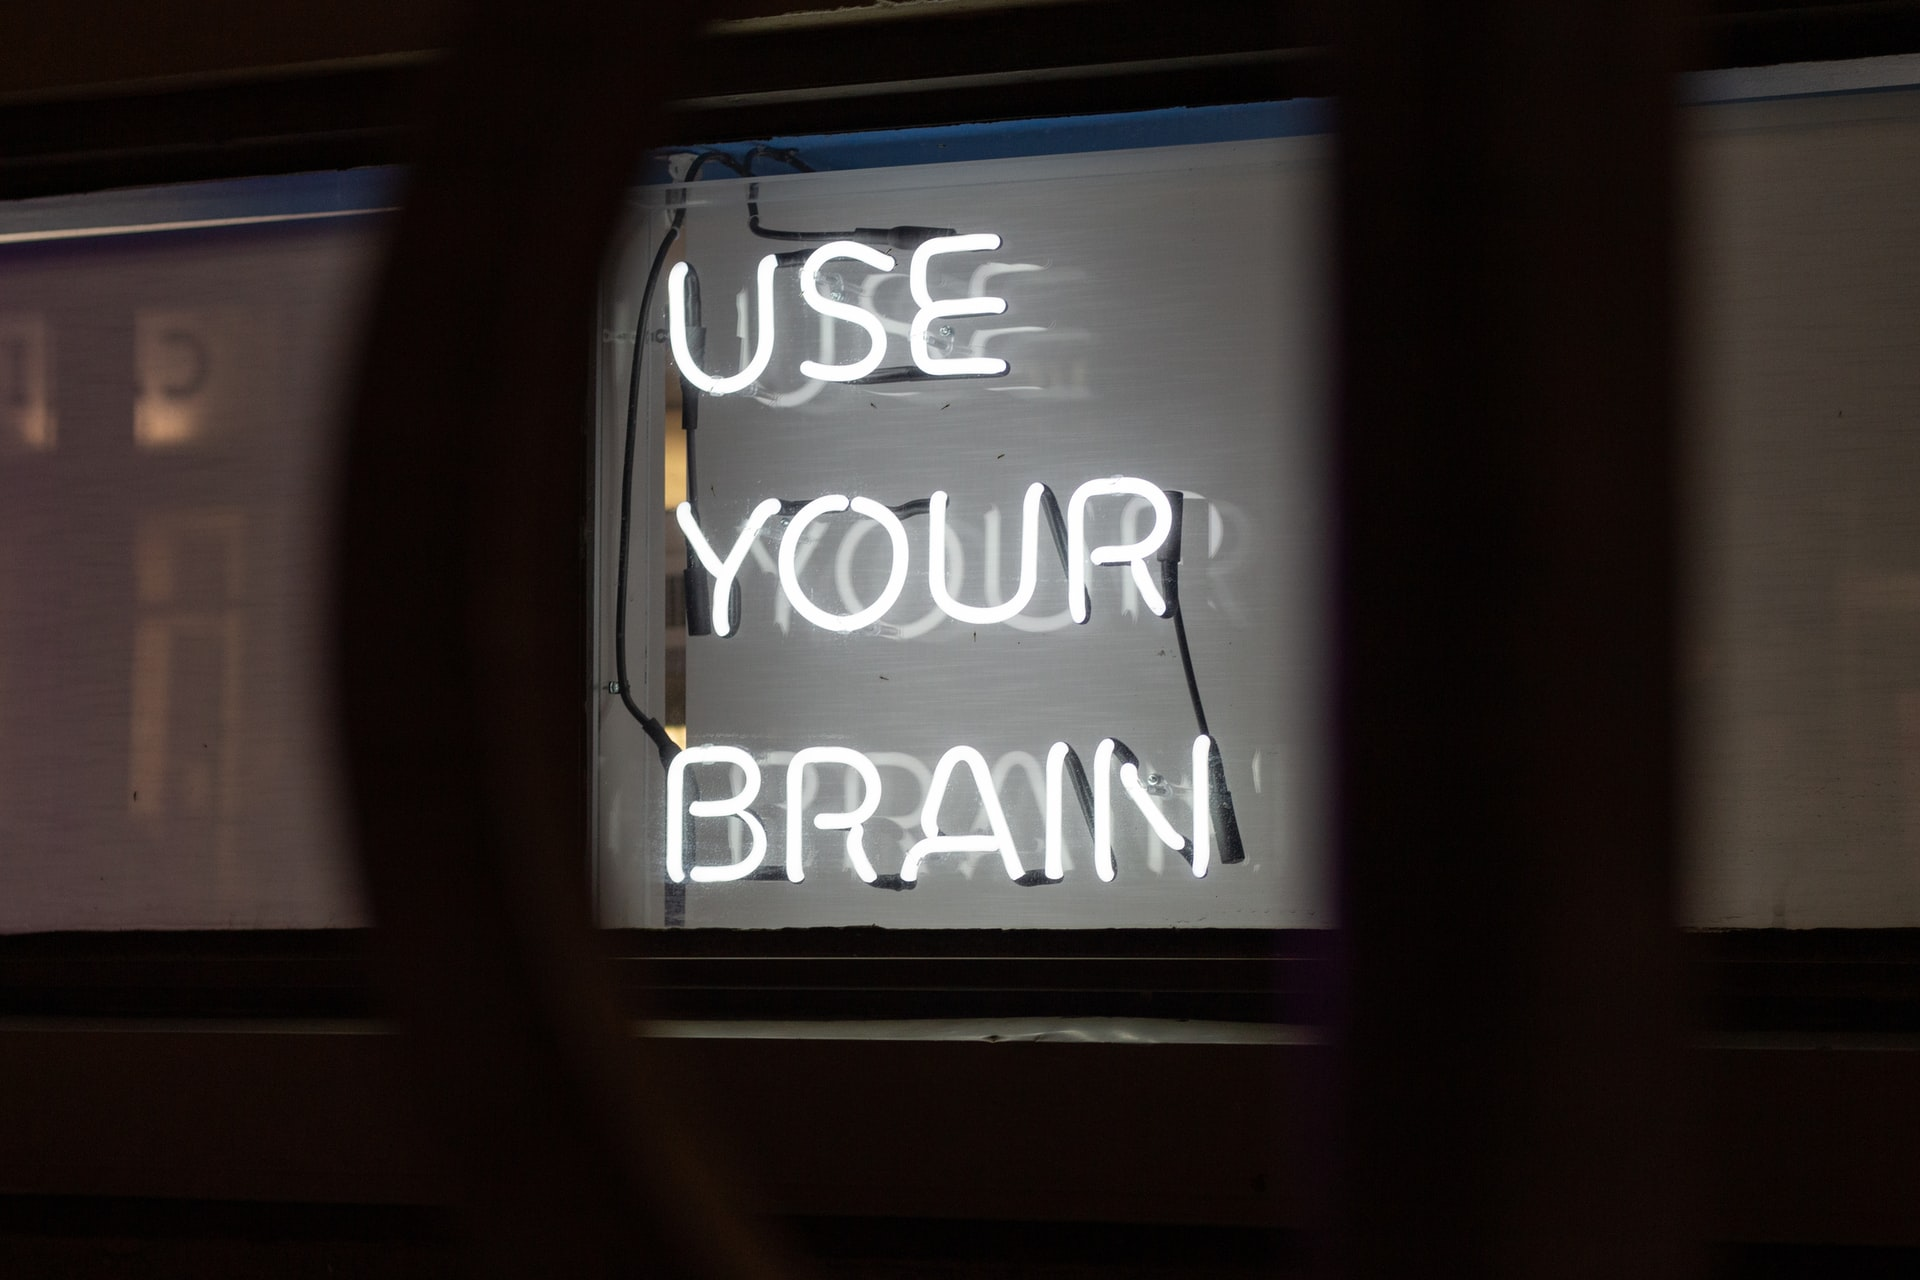 """""""Use your brain"""" Neon sign"""